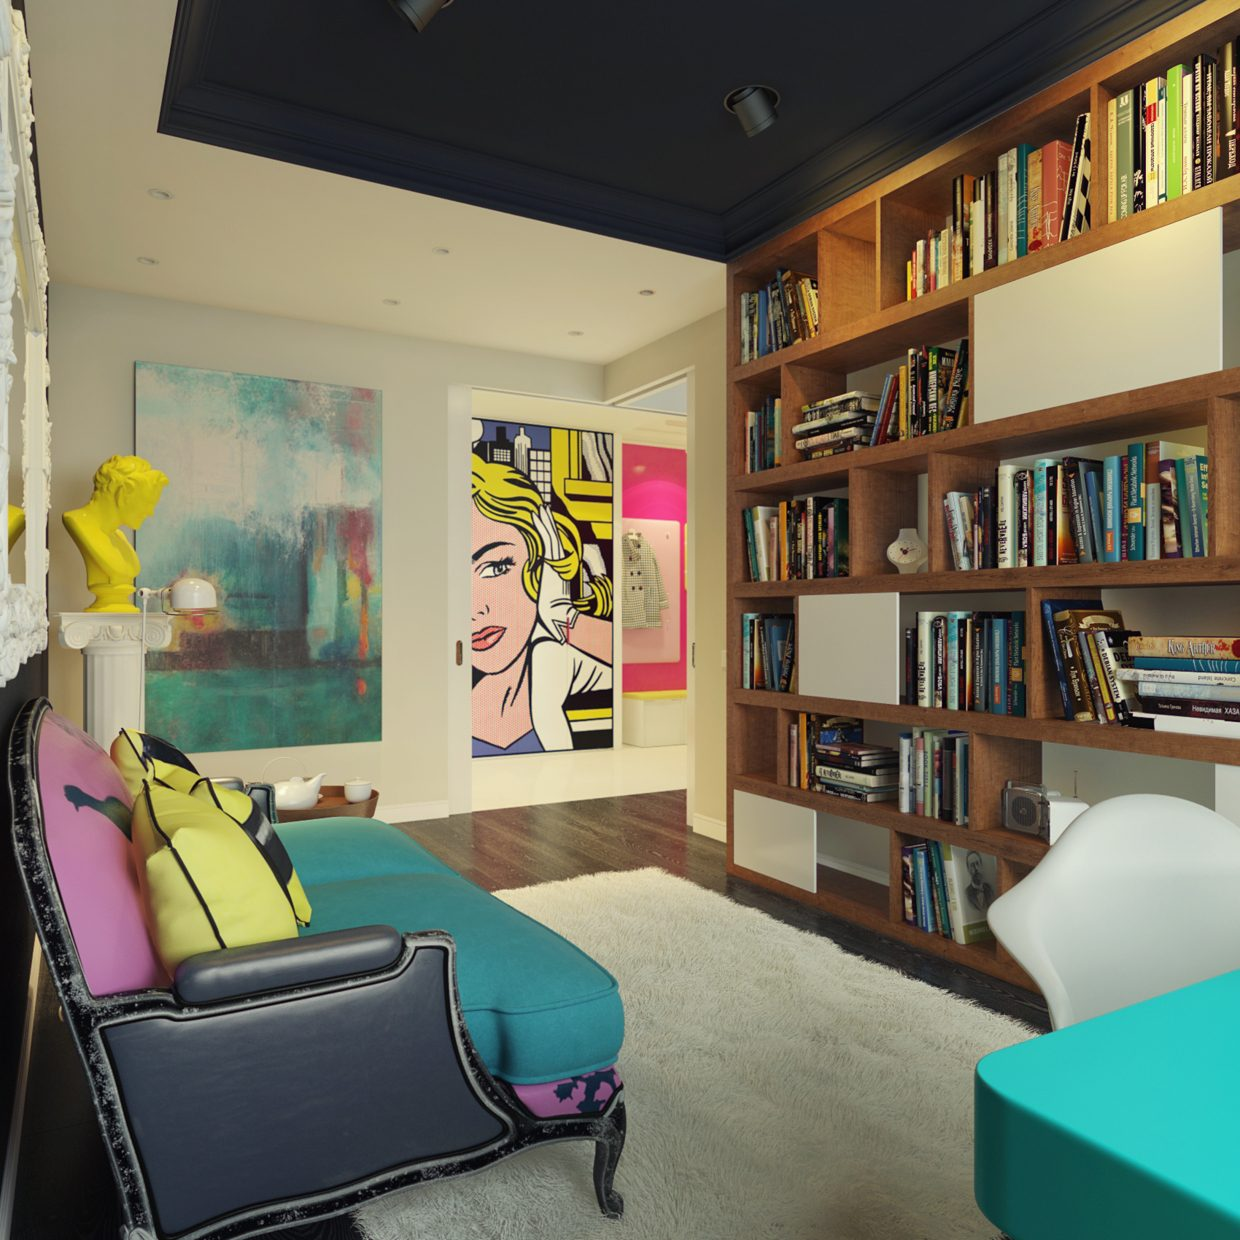 Home Internal Design: Modern Pop Art Style Apartment